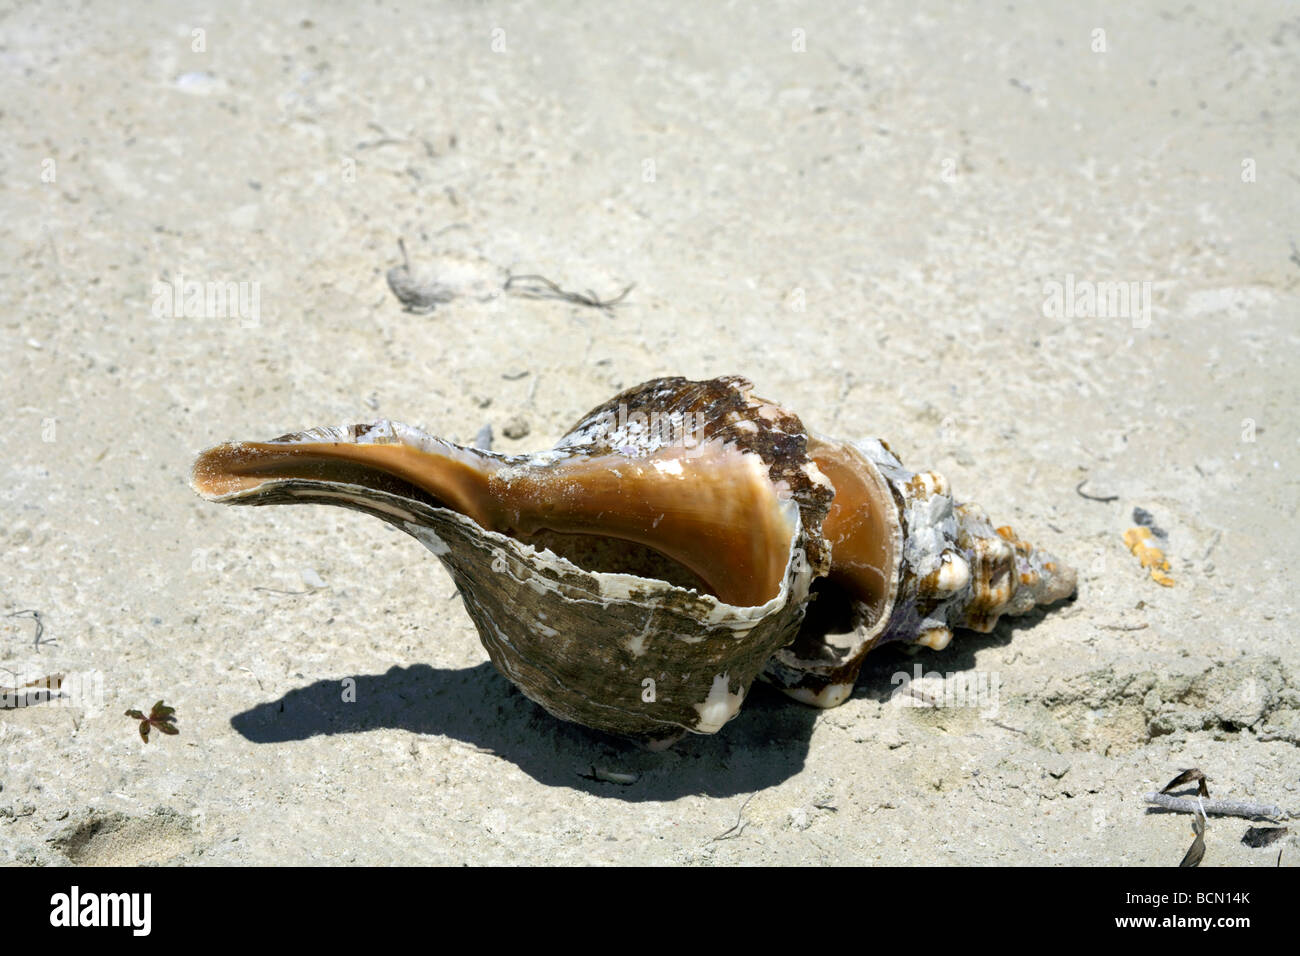 Conch Shell on beach, Holbox island, Quintana Roo, Yucatán Peninsula, Mexico, - Stock Image